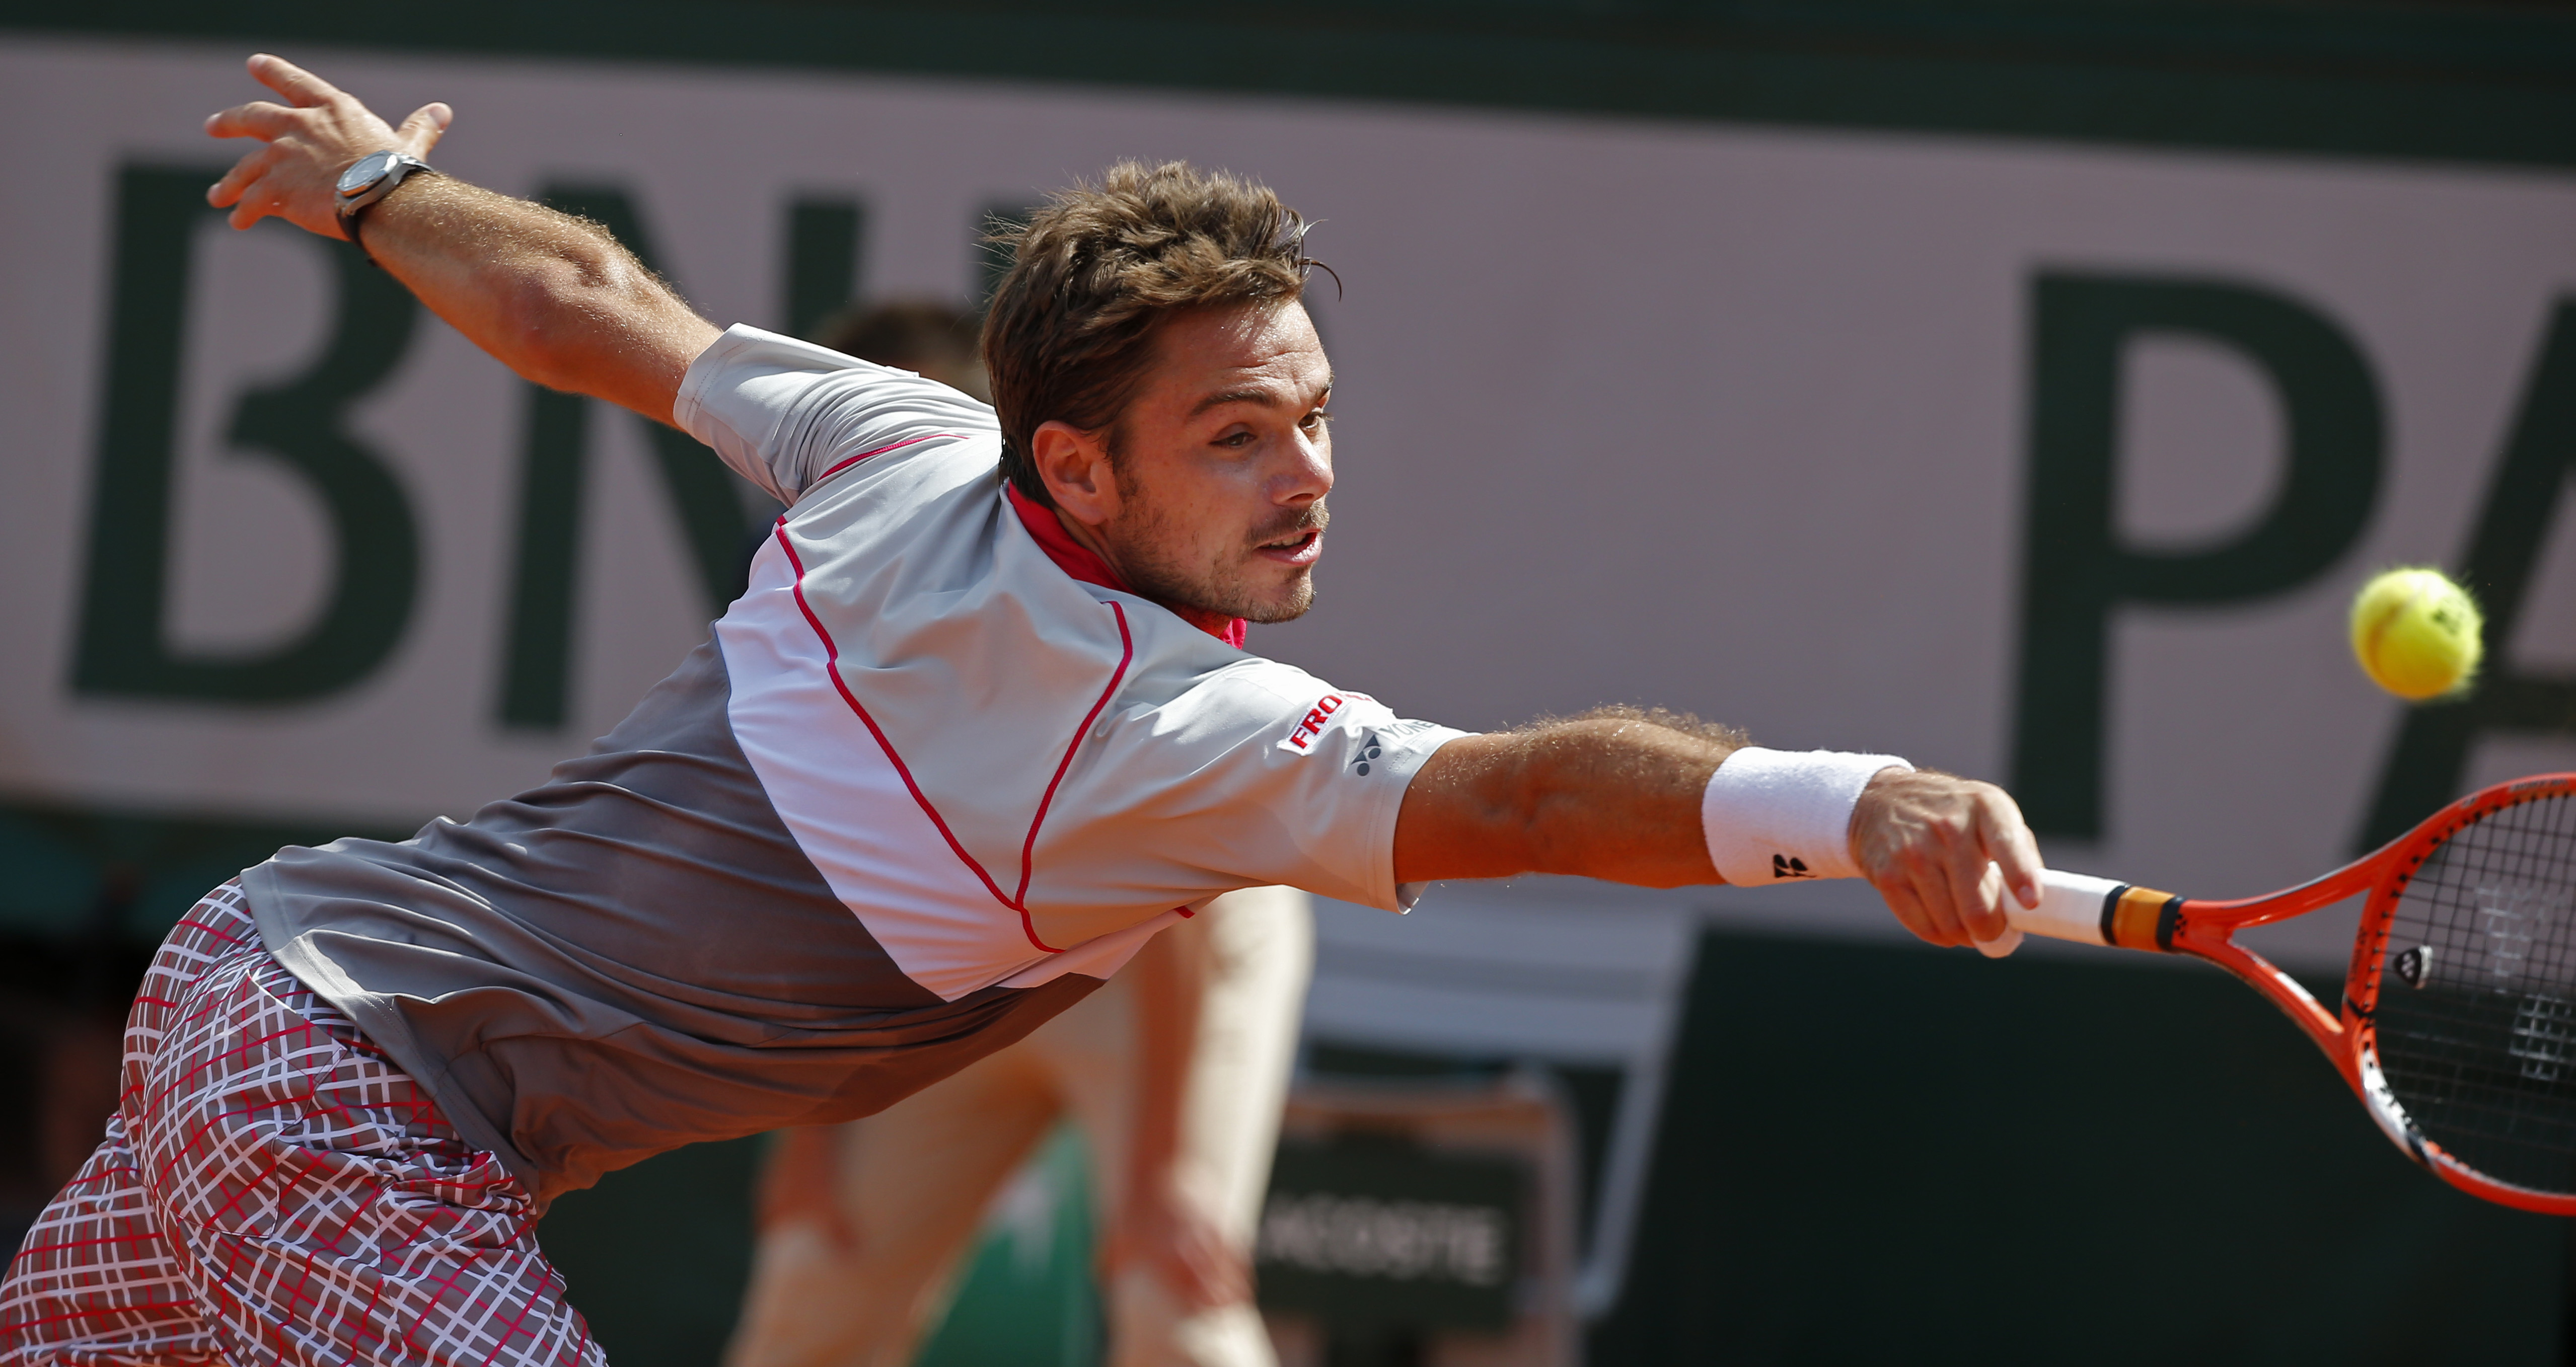 FILE - In this June 7, 2015, file photo, Switzerland's Stan Wawrinka returns in the men's final of the French Open tennis tournament against Serbia's Novak Djokovic in Paris, France. The French Open begins on Sunday, May 22, 2016.  (AP Photo/Michel Euler,